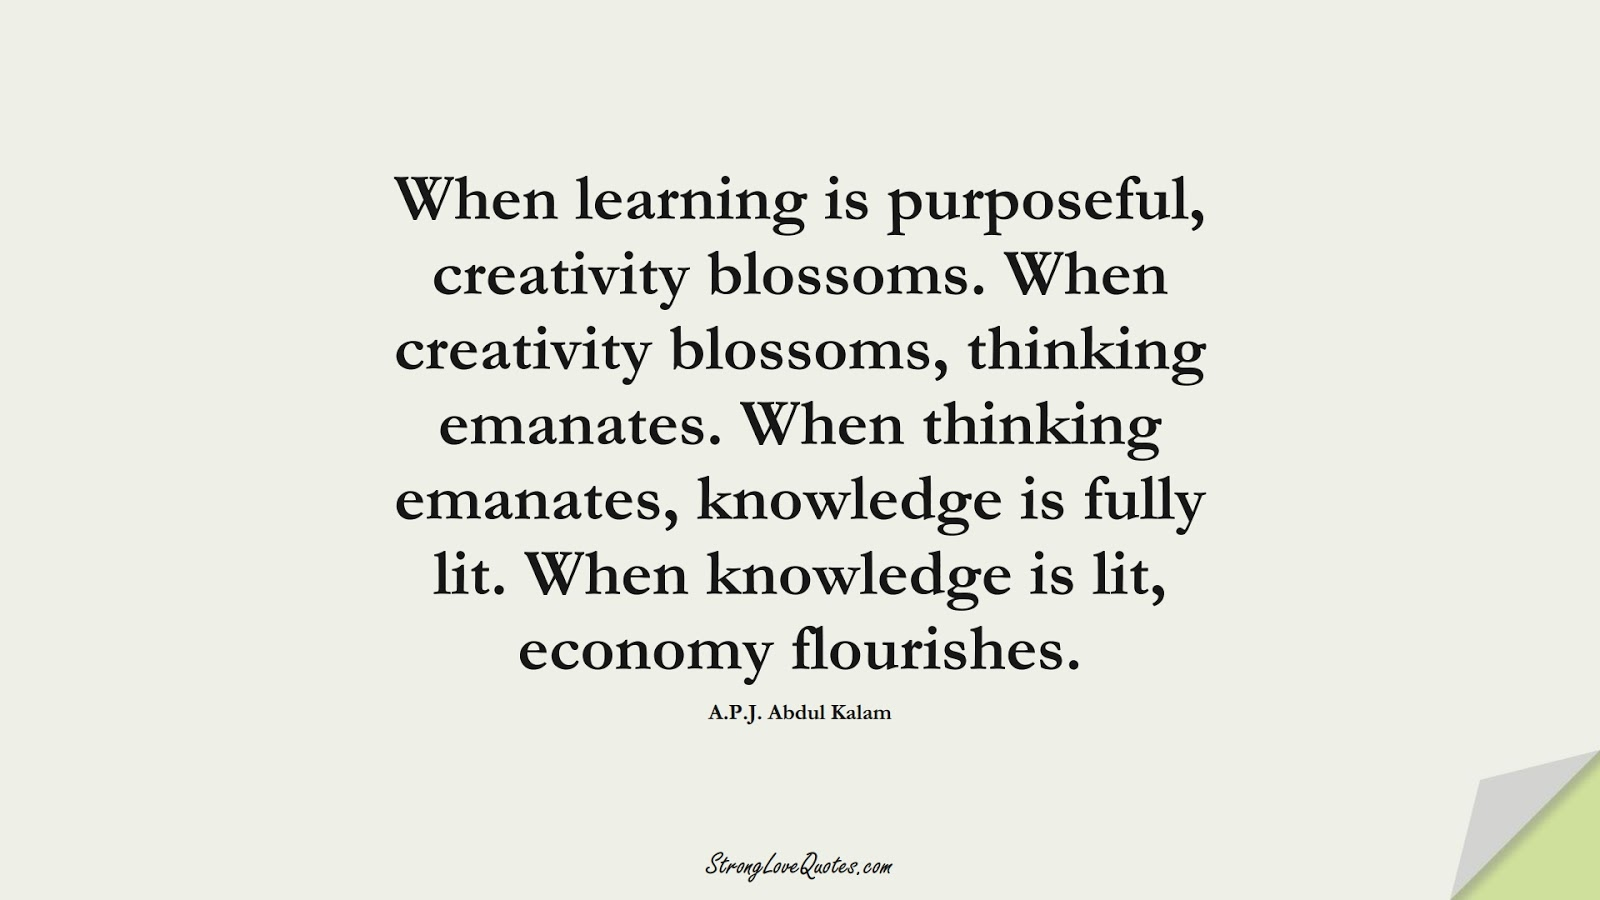 When learning is purposeful, creativity blossoms. When creativity blossoms, thinking emanates. When thinking emanates, knowledge is fully lit. When knowledge is lit, economy flourishes. (A.P.J. Abdul Kalam);  #LearningQuotes